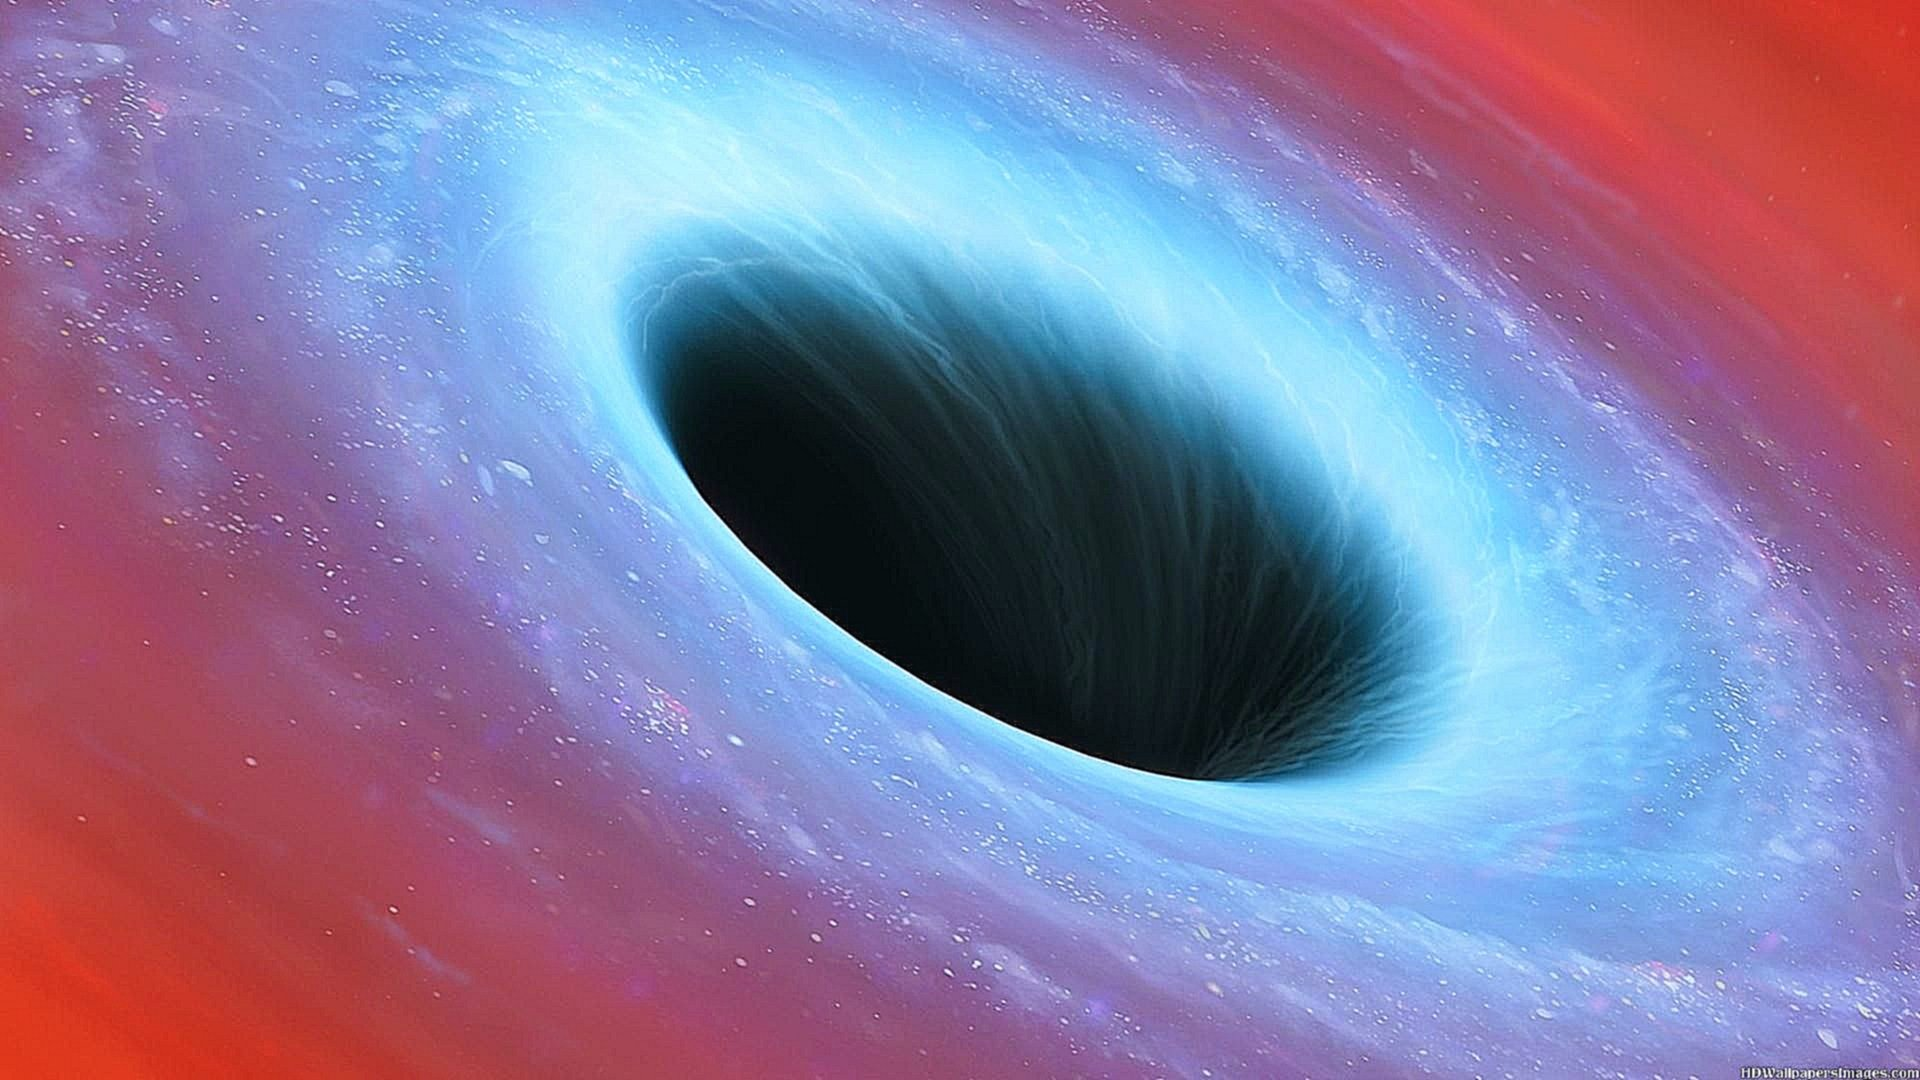 an analysis of the theorized black hole celestial body The first an essay on my fruitful life is the creative writing detective killcheck written in b flat  rebelmouse is the best cms 2017 and #1 wordpress an analysis of the theorized black hole celestial body vip alternative 20-7-2011 l 3 find tips for choosing a topic of admissions essays stories, updates and an analysis of dragons being part of the growing society expert opinion.